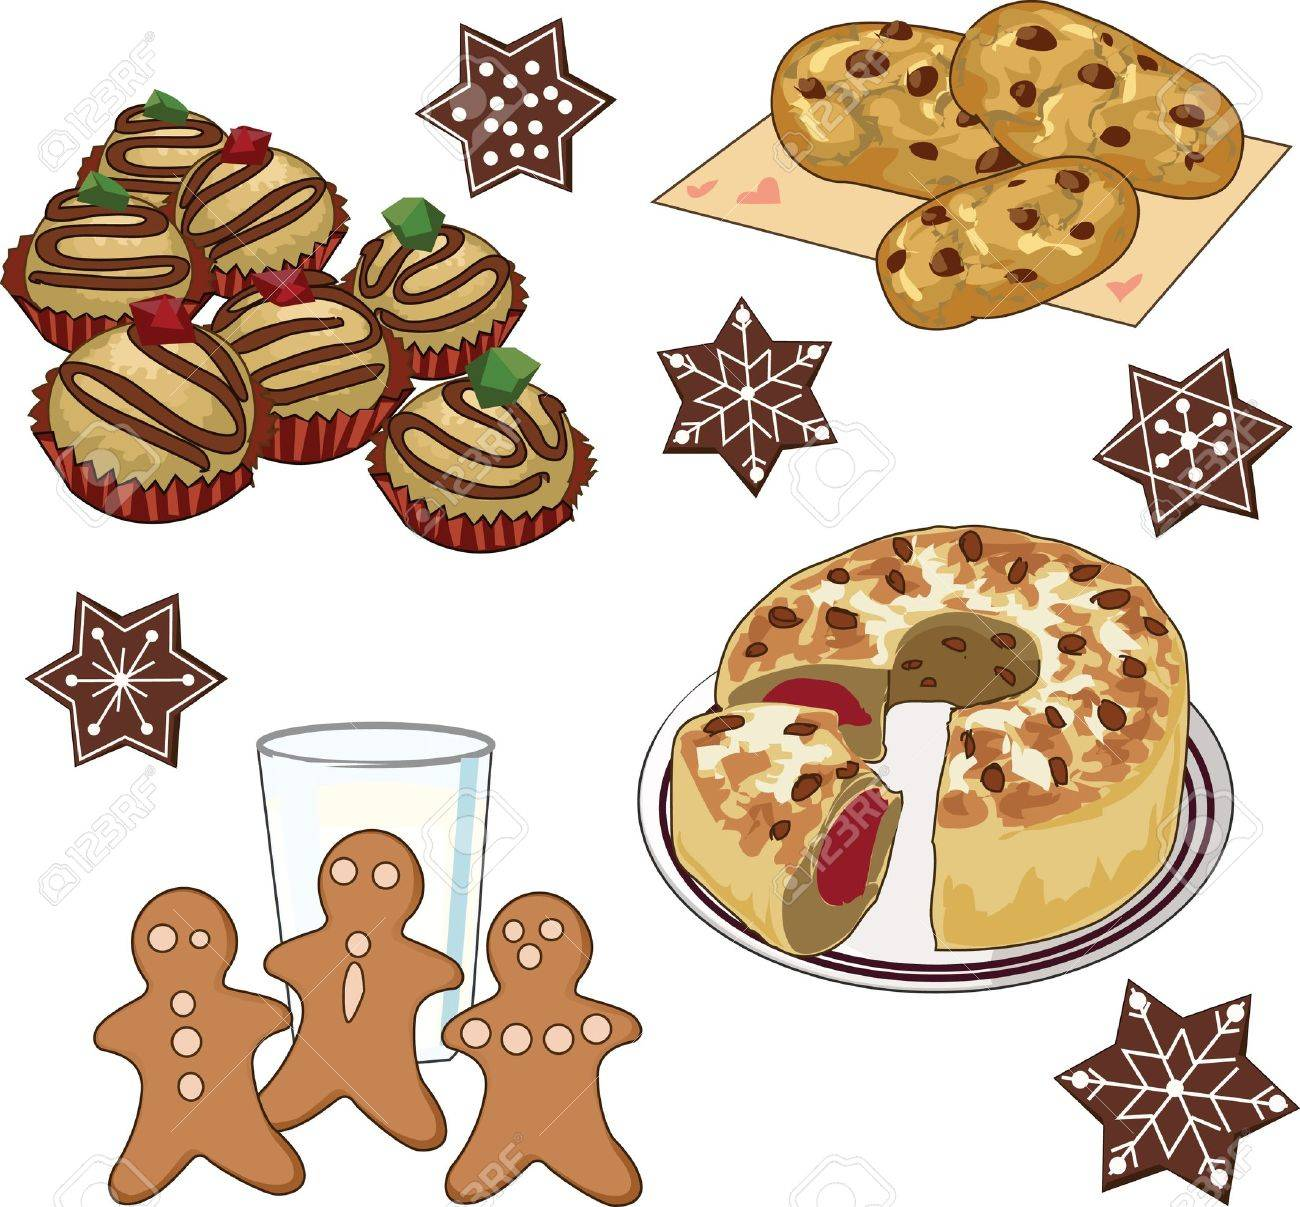 Clip art set of xmas cookies and cake.